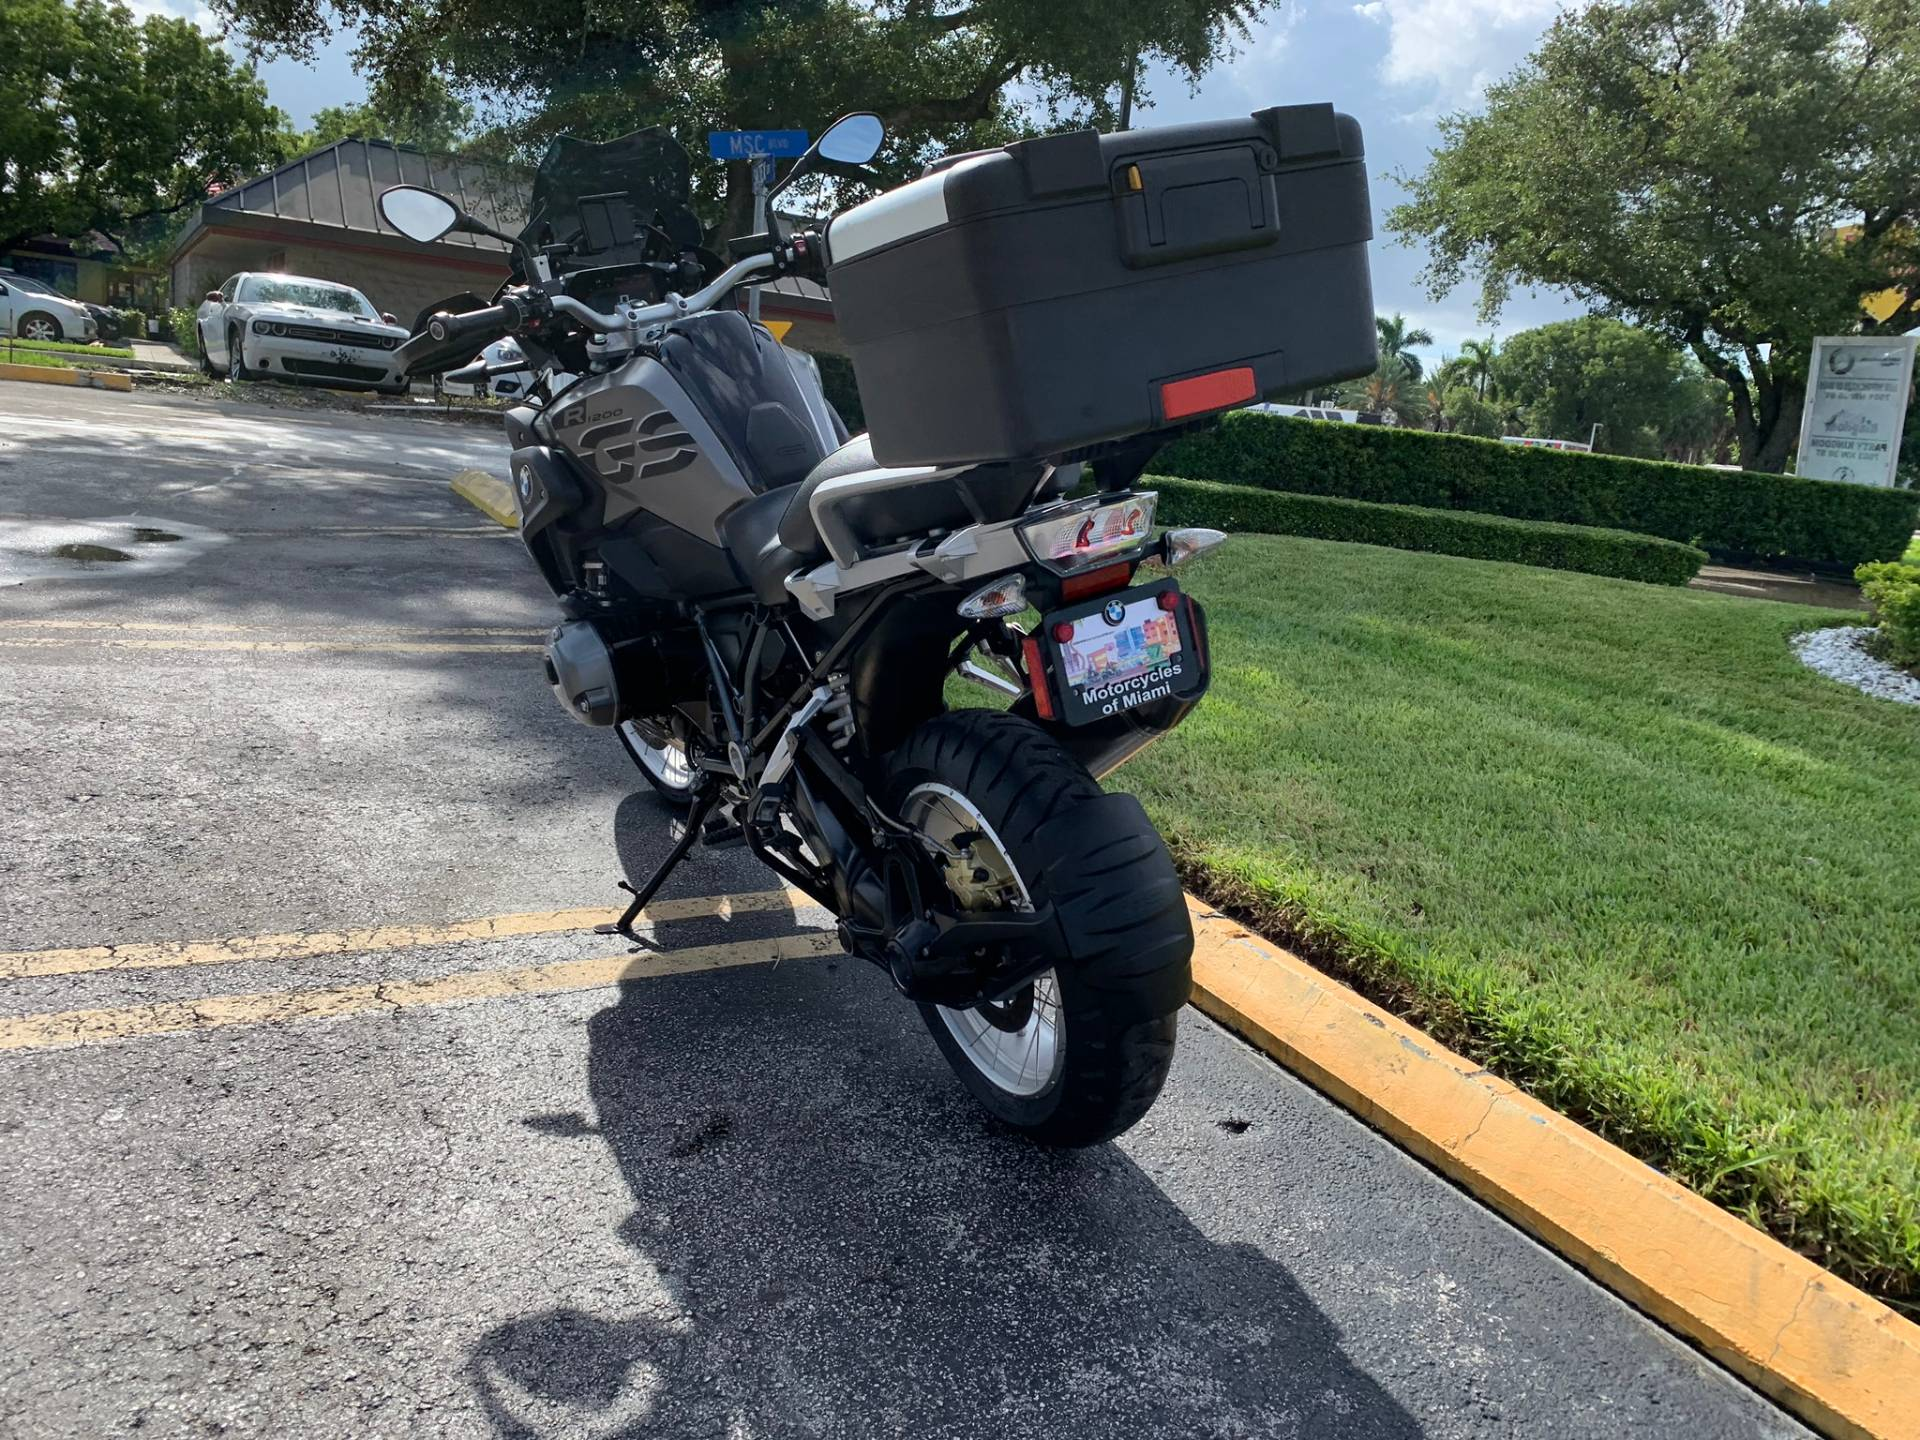 Used 2018 BMW R 1200 GS for sale, BMW R 1200GS for sale, BMW Motorcycle R1200GS, used BMW 1200GS, DUAL, GSA, BMW. BMW Motorcycles of Miami, Motorcycles of Miami, Motorcycles Miami, New Motorcycles, Used Motorcycles, pre-owned. #BMWMotorcyclesOfMiami #MotorcyclesOfMiami. - Photo 24